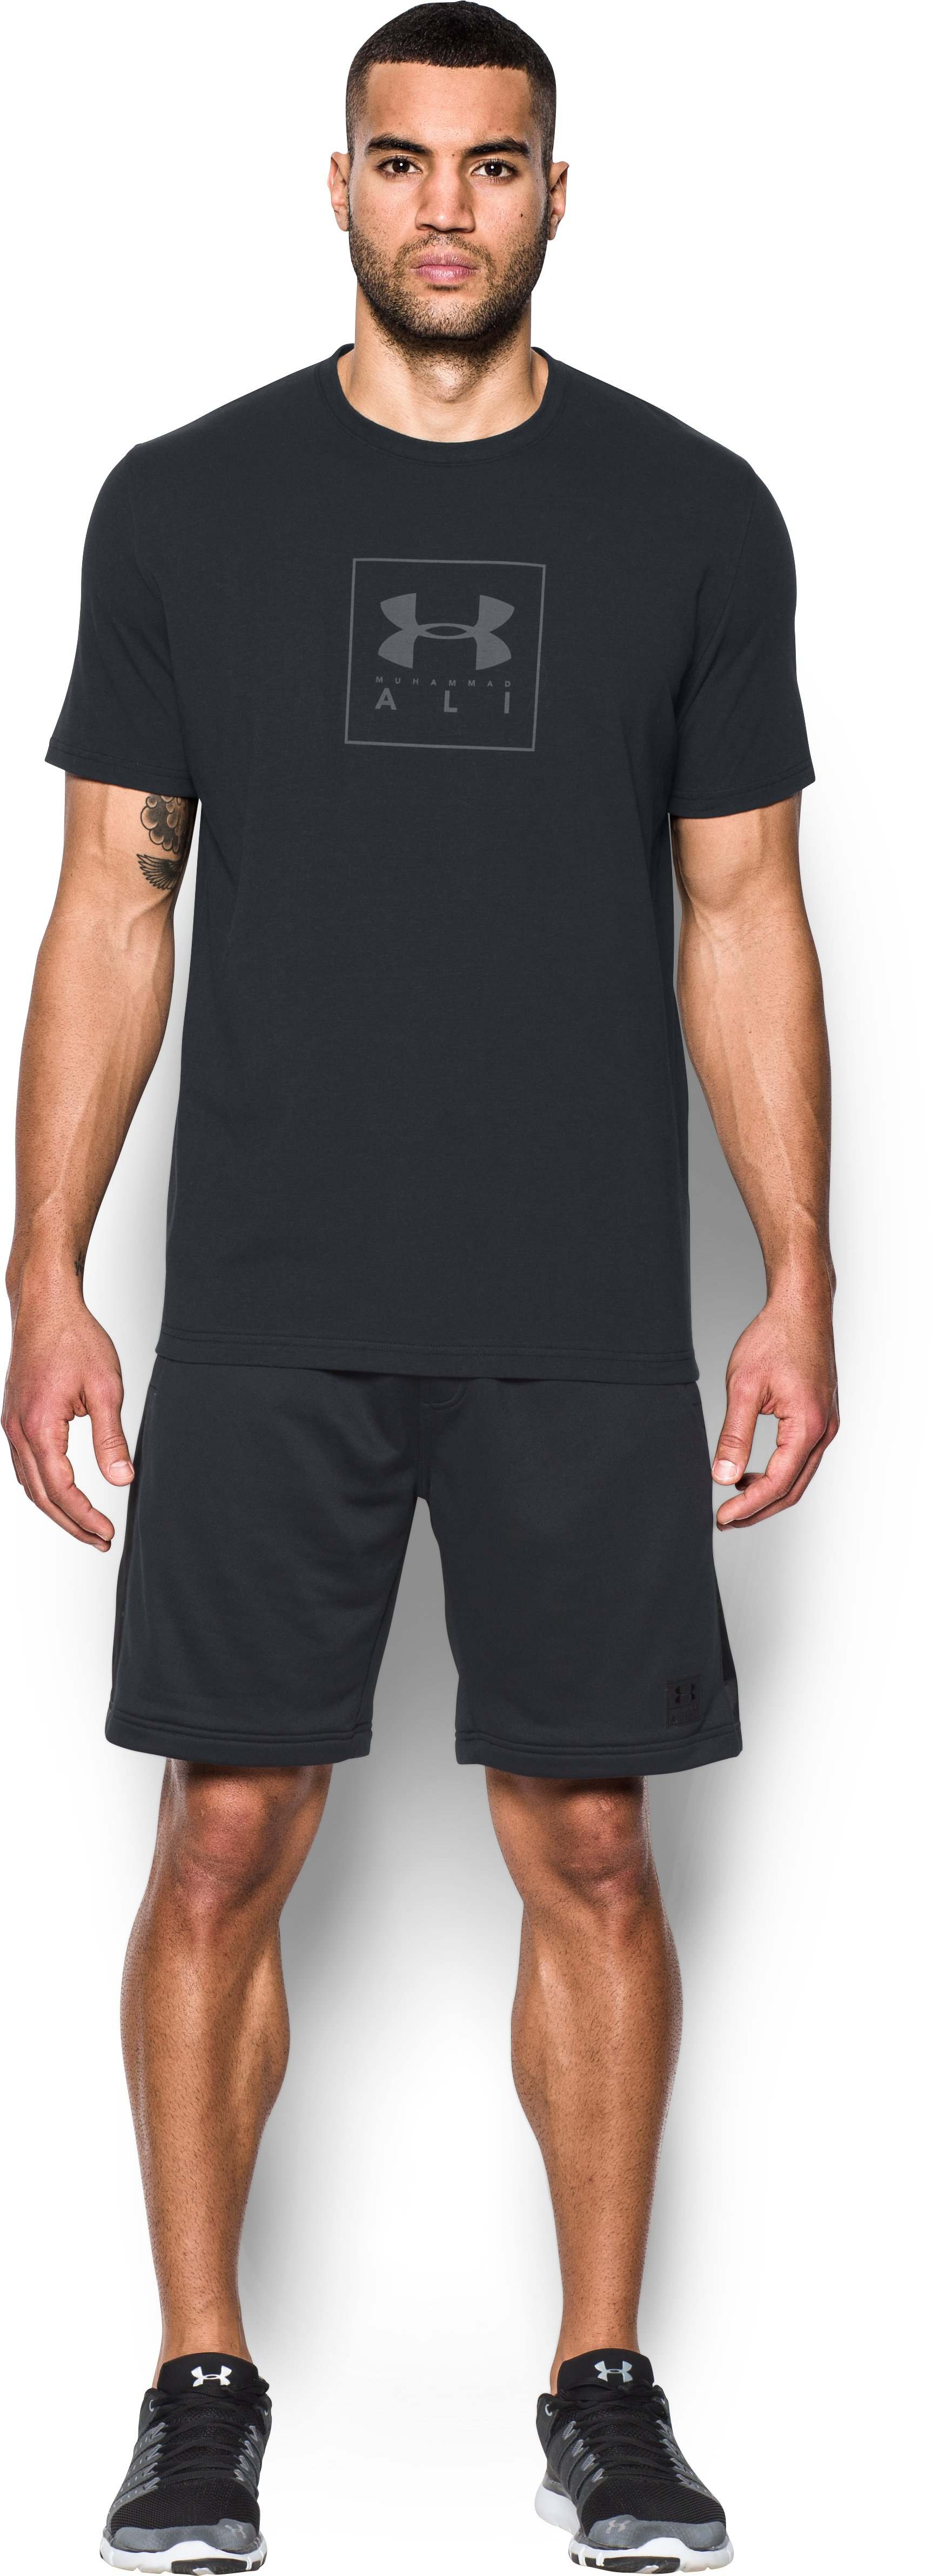 Men's UA x Ali Block Logo T-Shirt, Black